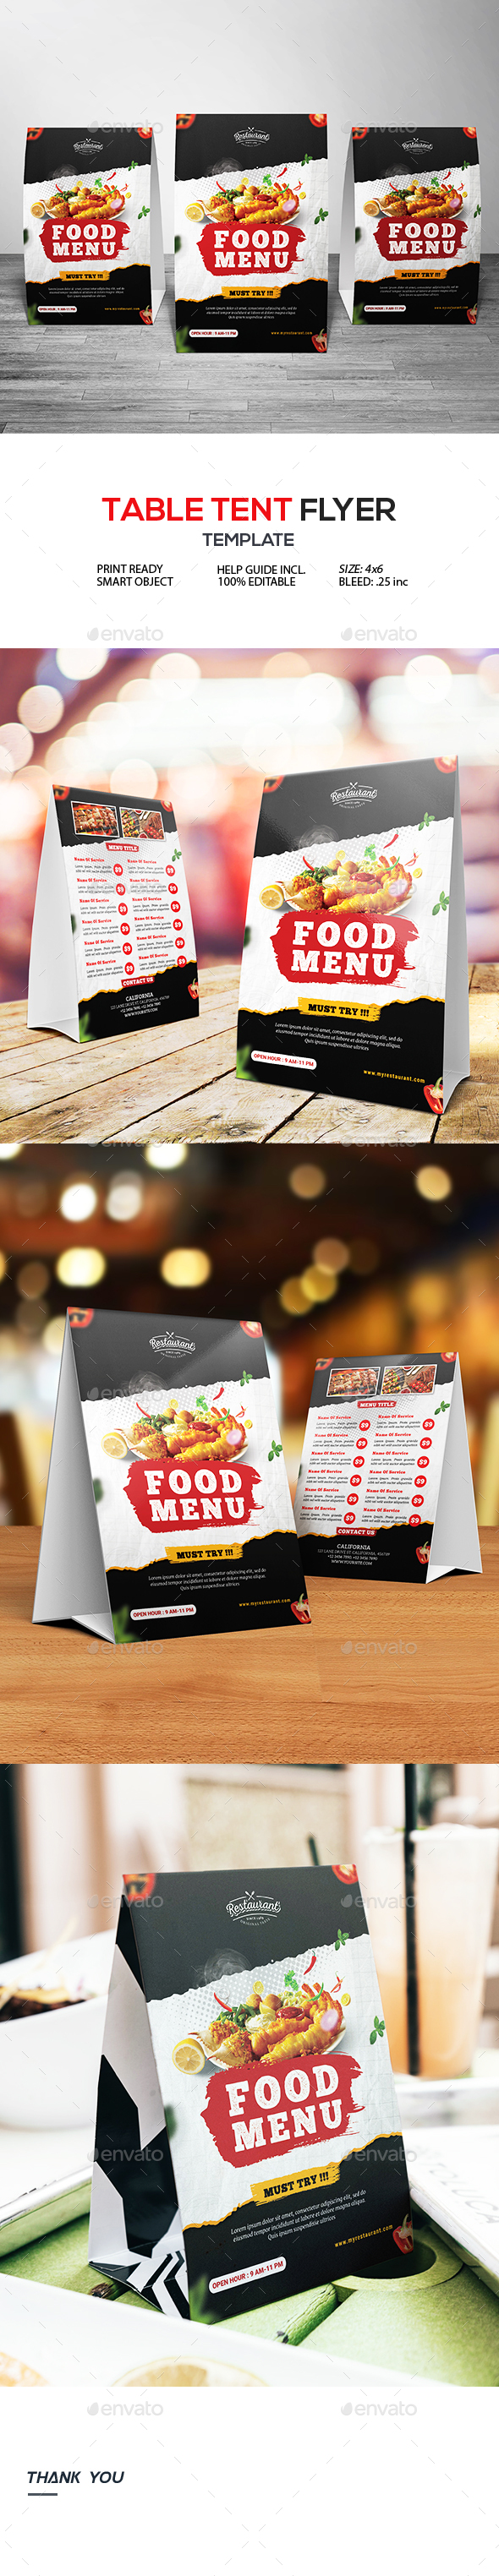 Restaurant Table Tent Flyer